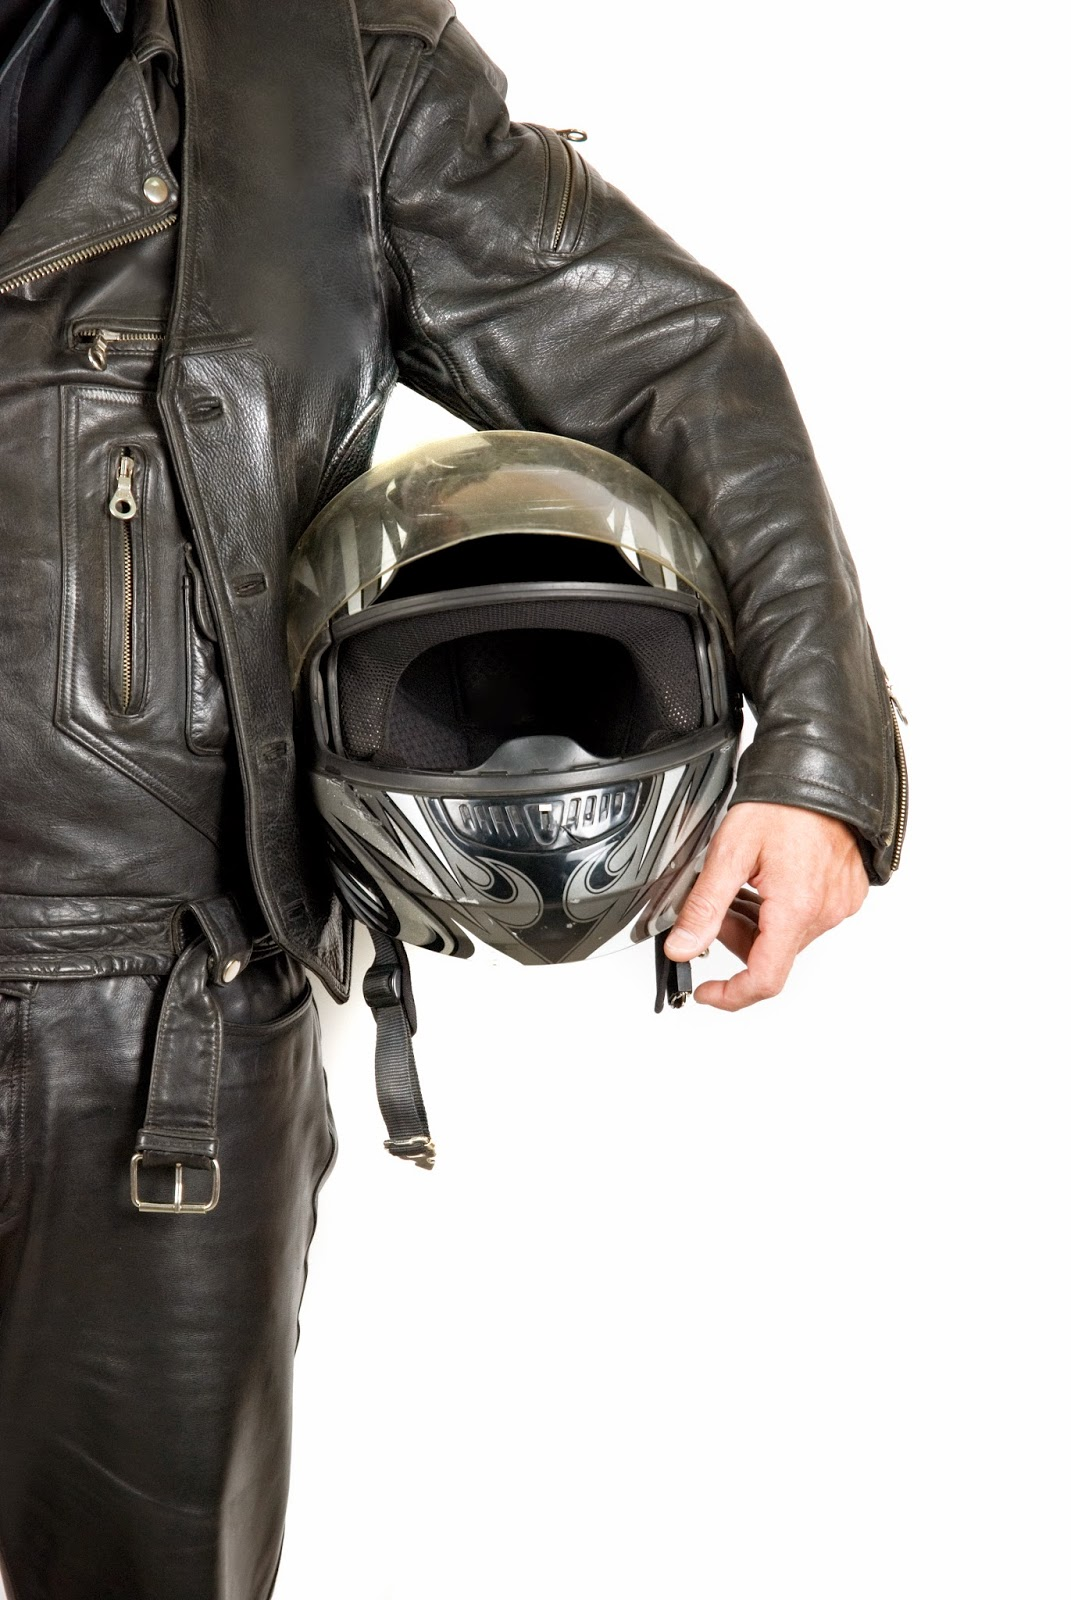 Leather jacket upkeep -  Extra Upkeep Before Your Next Trip Here Are Some Pointers On Making Sure You Keep Your Motorcycle In The Best Form Possible And A Few Tips On General